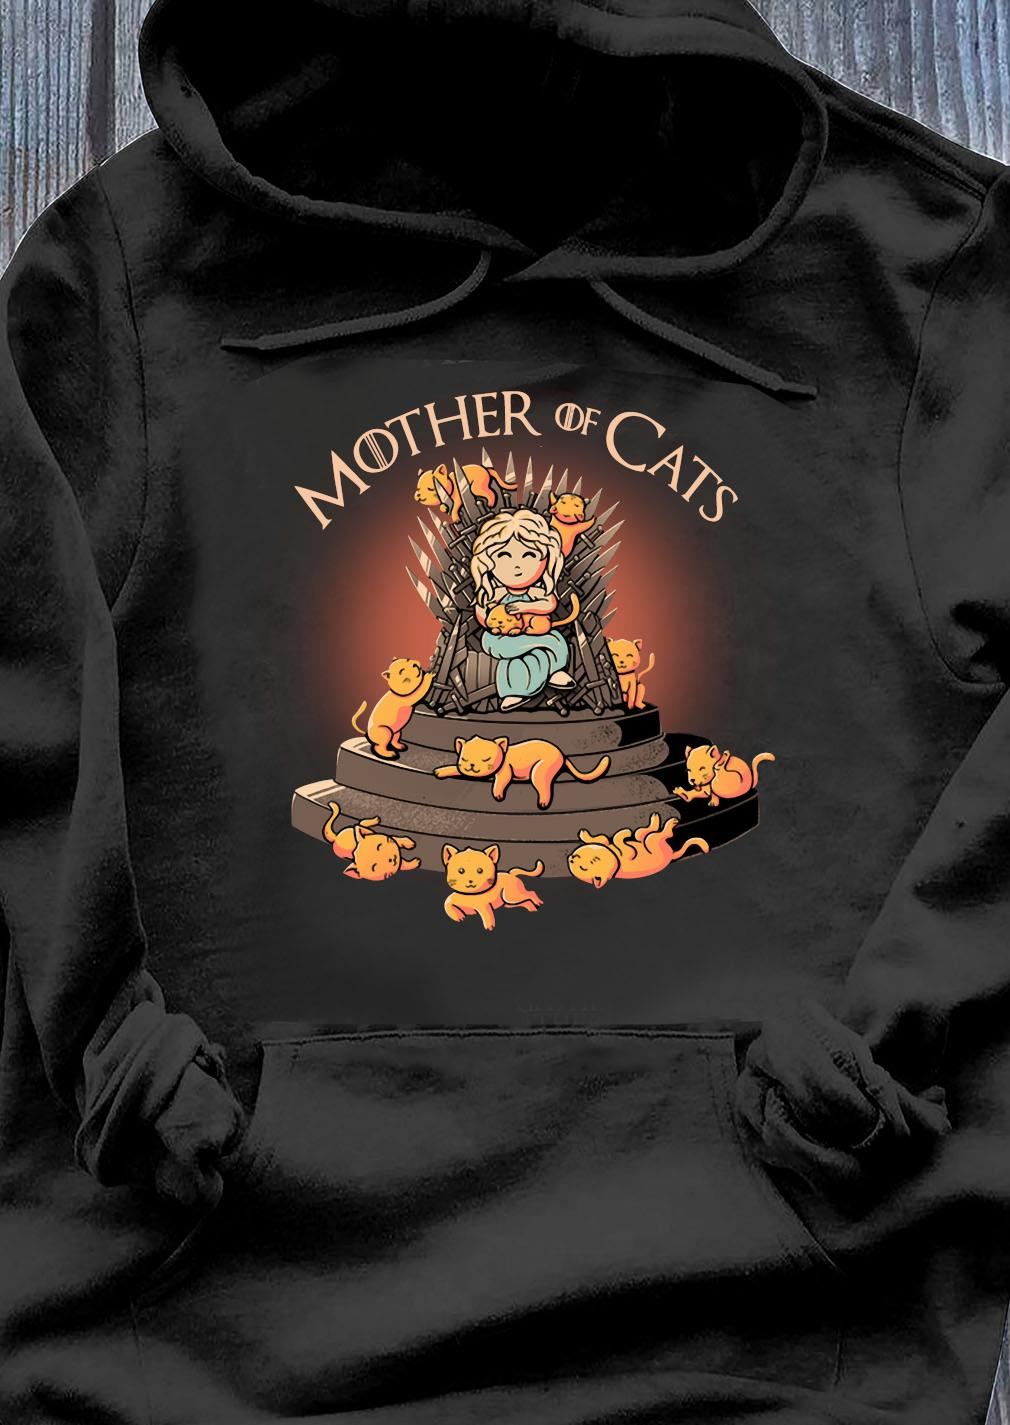 Top Daenerys Targaryen Mother Of Cats Game Of Thrones Shirt Hoodie